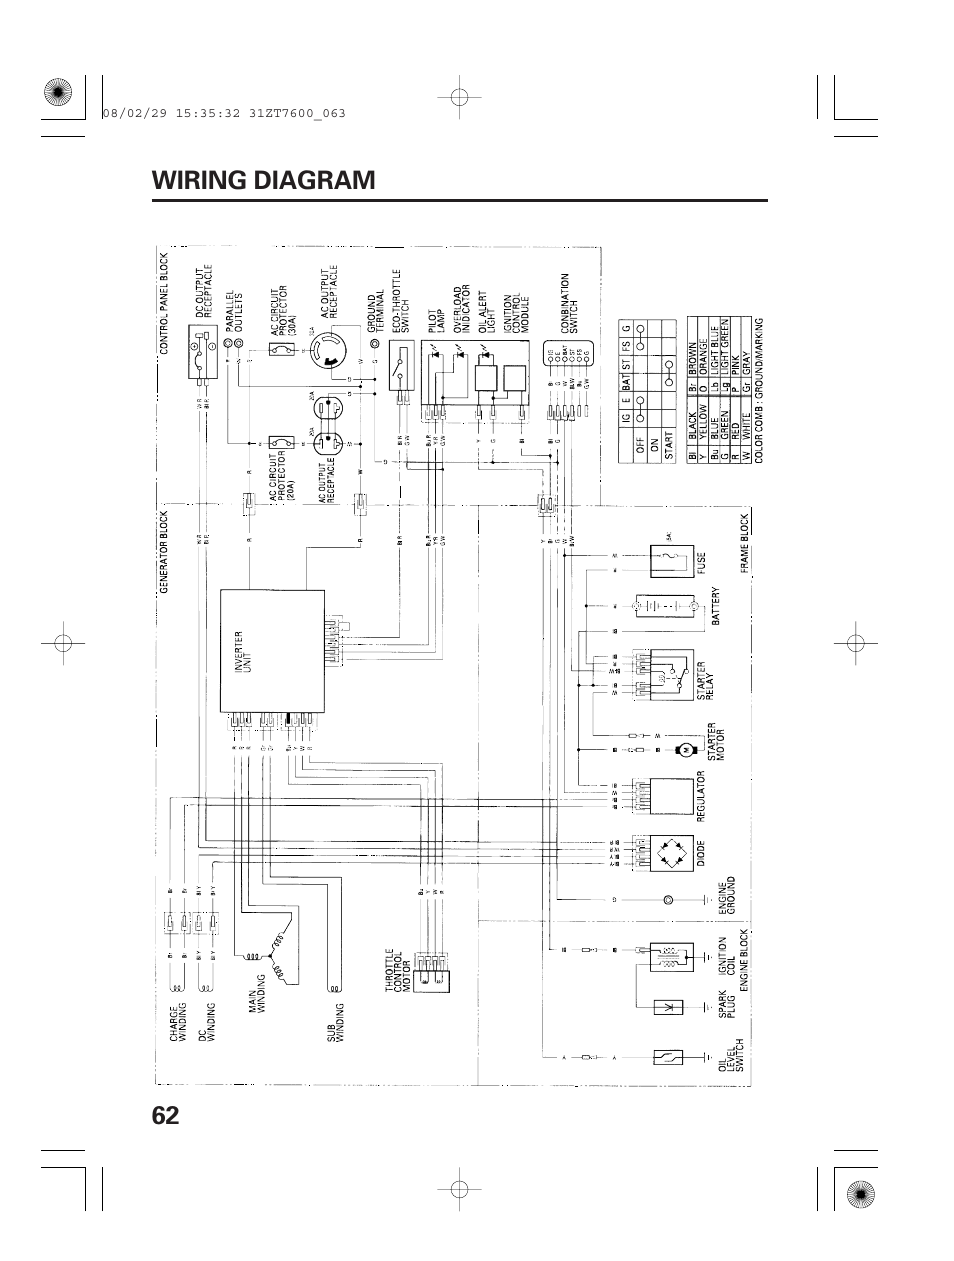 Wiring diagram, 62 wiring diagram | HONDA EU3000is User Manual | Page 64 /  71